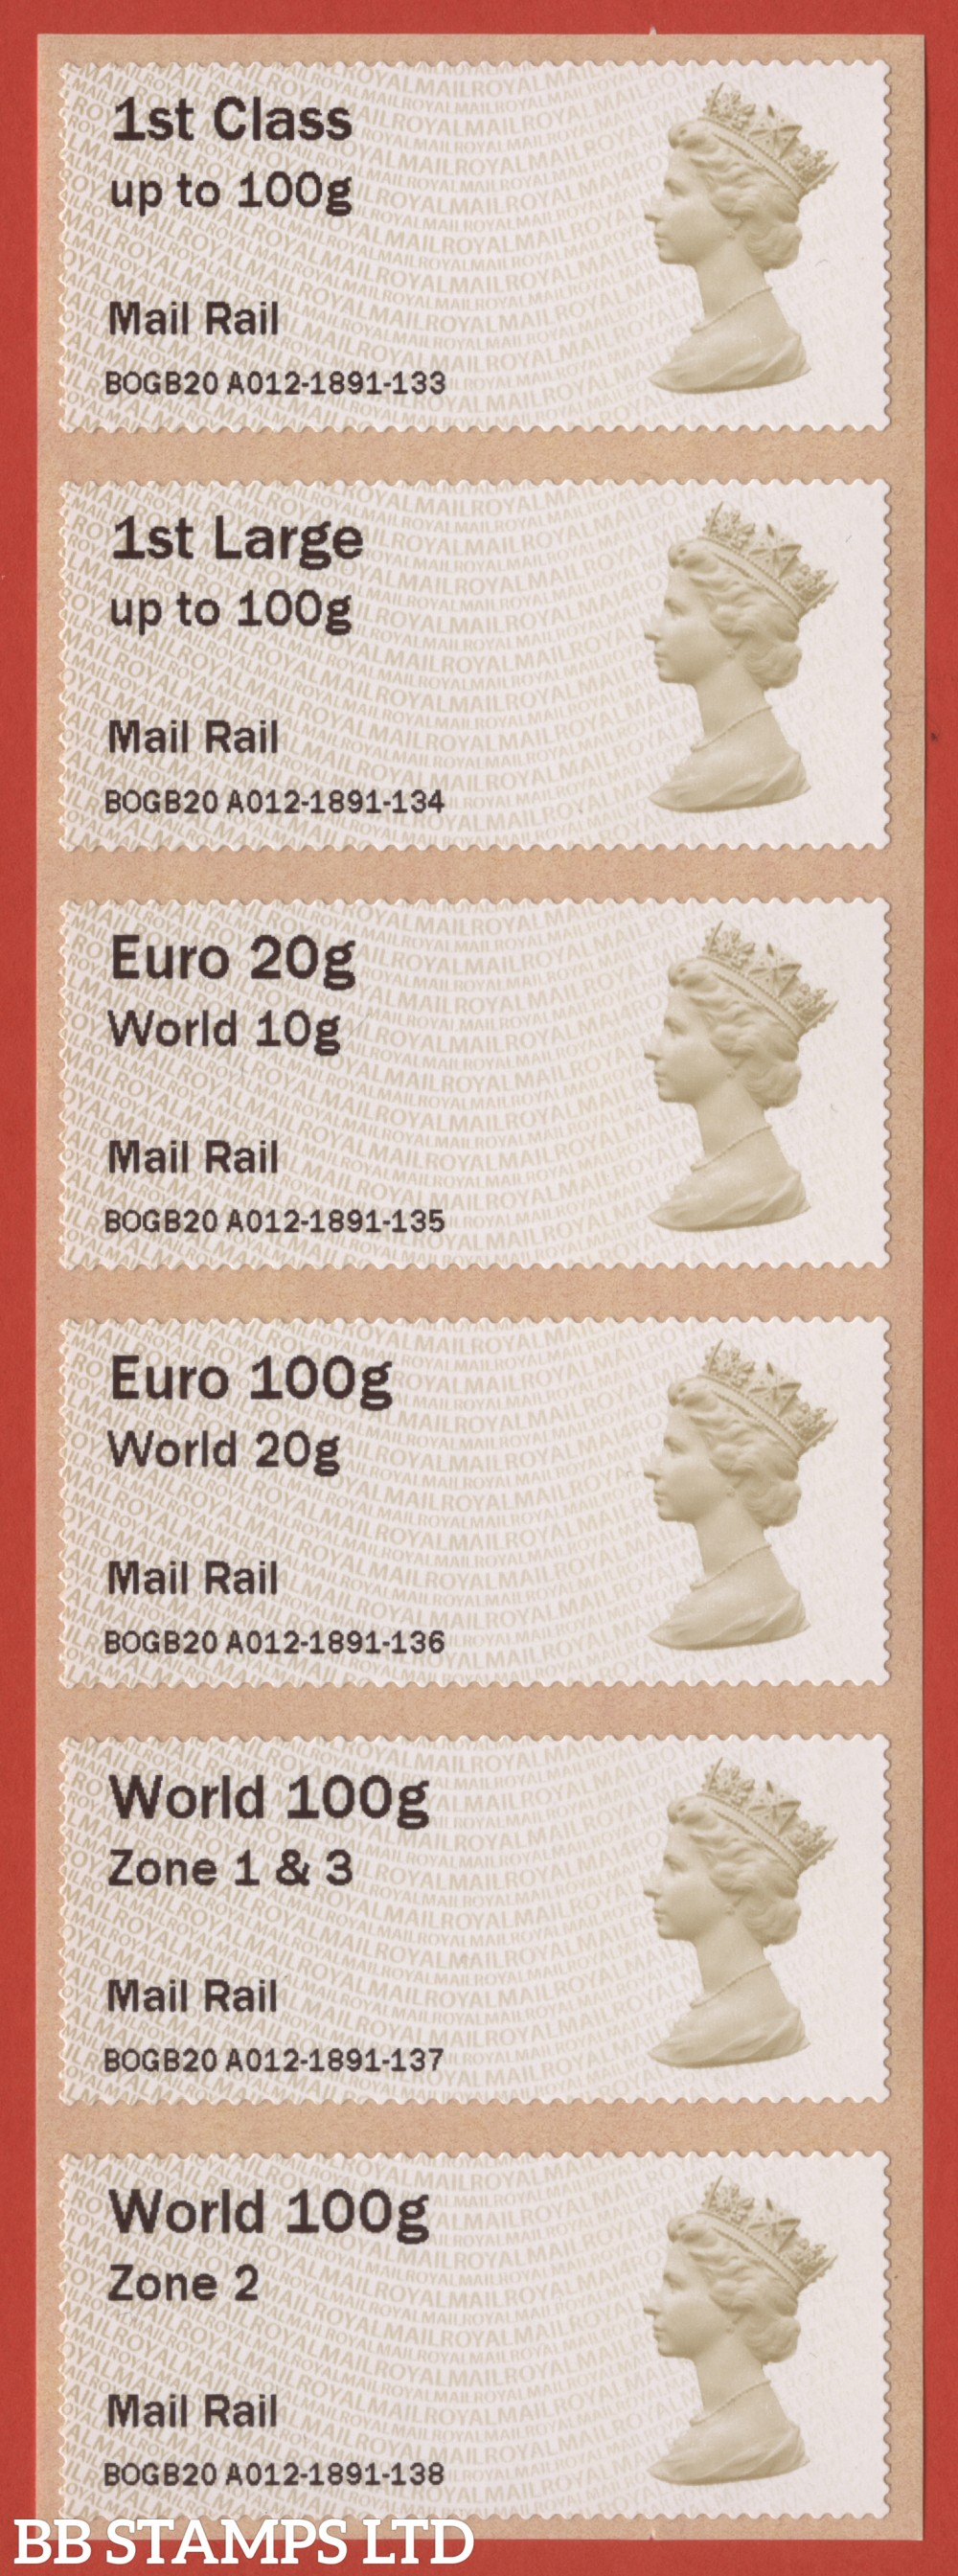 Machin: Mail Rail, set of 6 (TIIIA) with new overseas stamps: 1st/1stL/Euro 20g World 10g, and 3 new values: Euro 100g World 20g, World 100g Zone 1 & 3 [with &; doesn't exist with hyphen] and World Zone 2: with MA14 year code (BK30, P5)